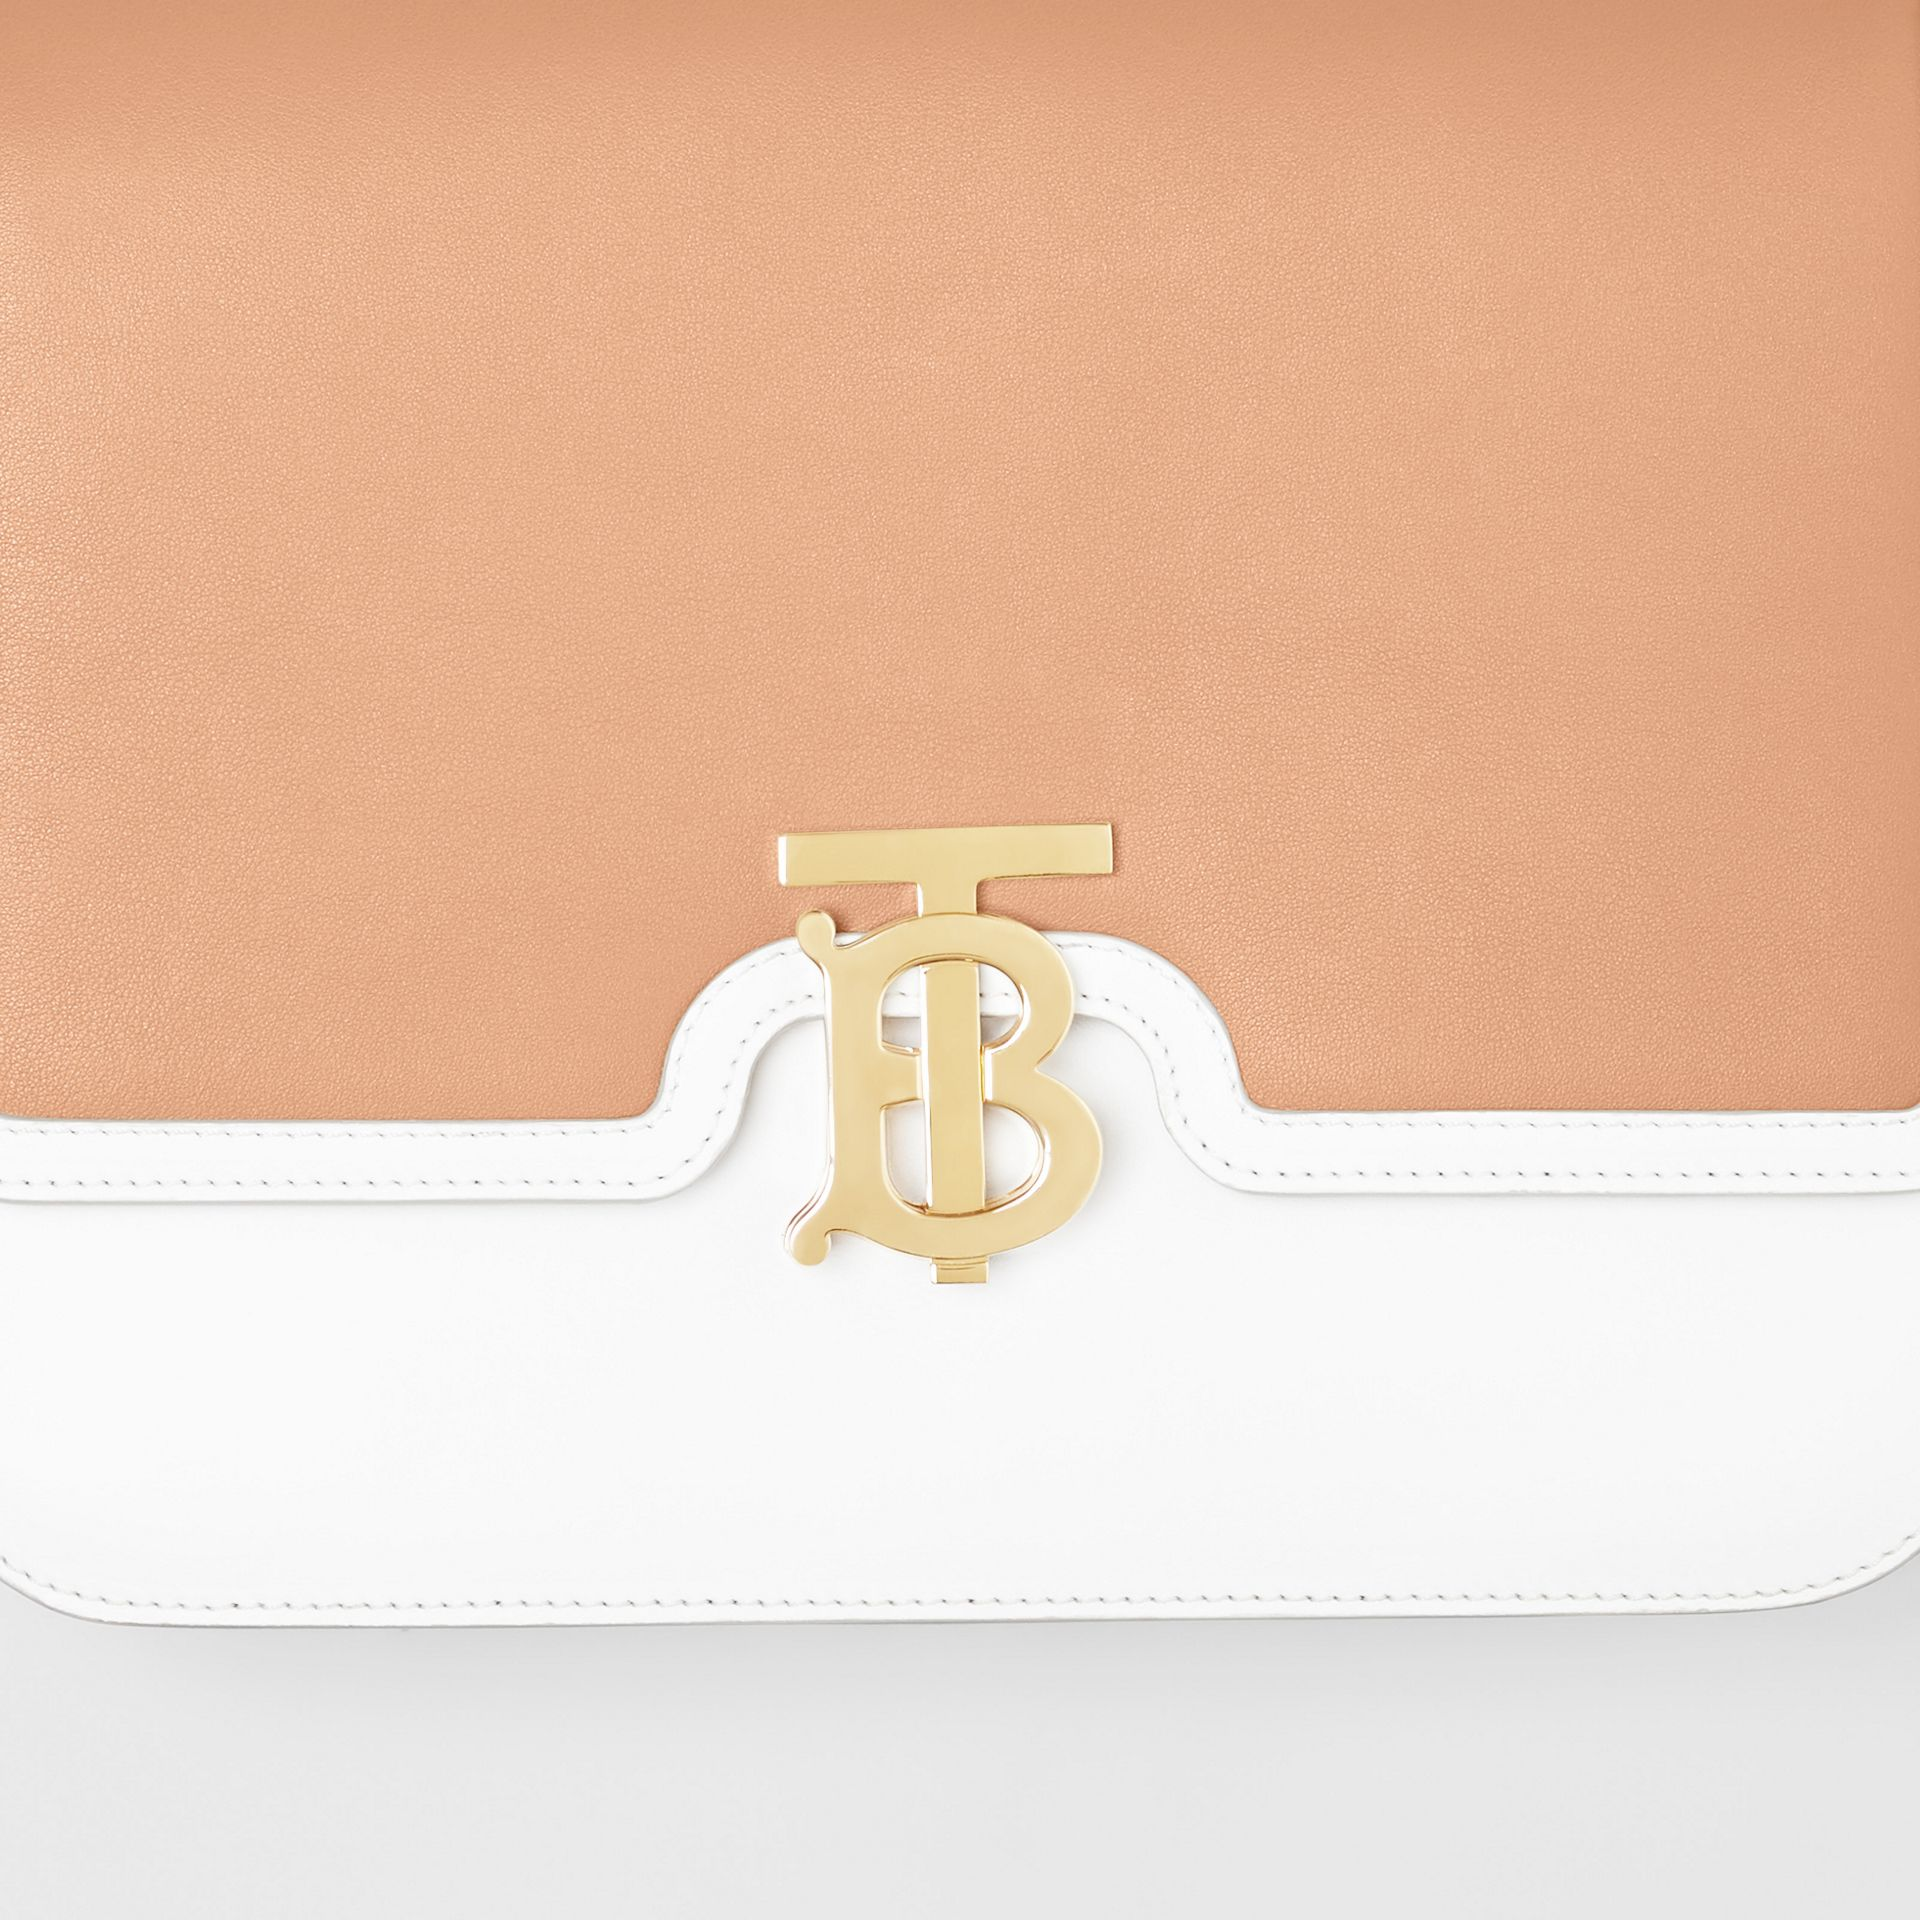 Medium Two-tone Leather TB Bag in Chalk White/light Camel - Women | Burberry - gallery image 1